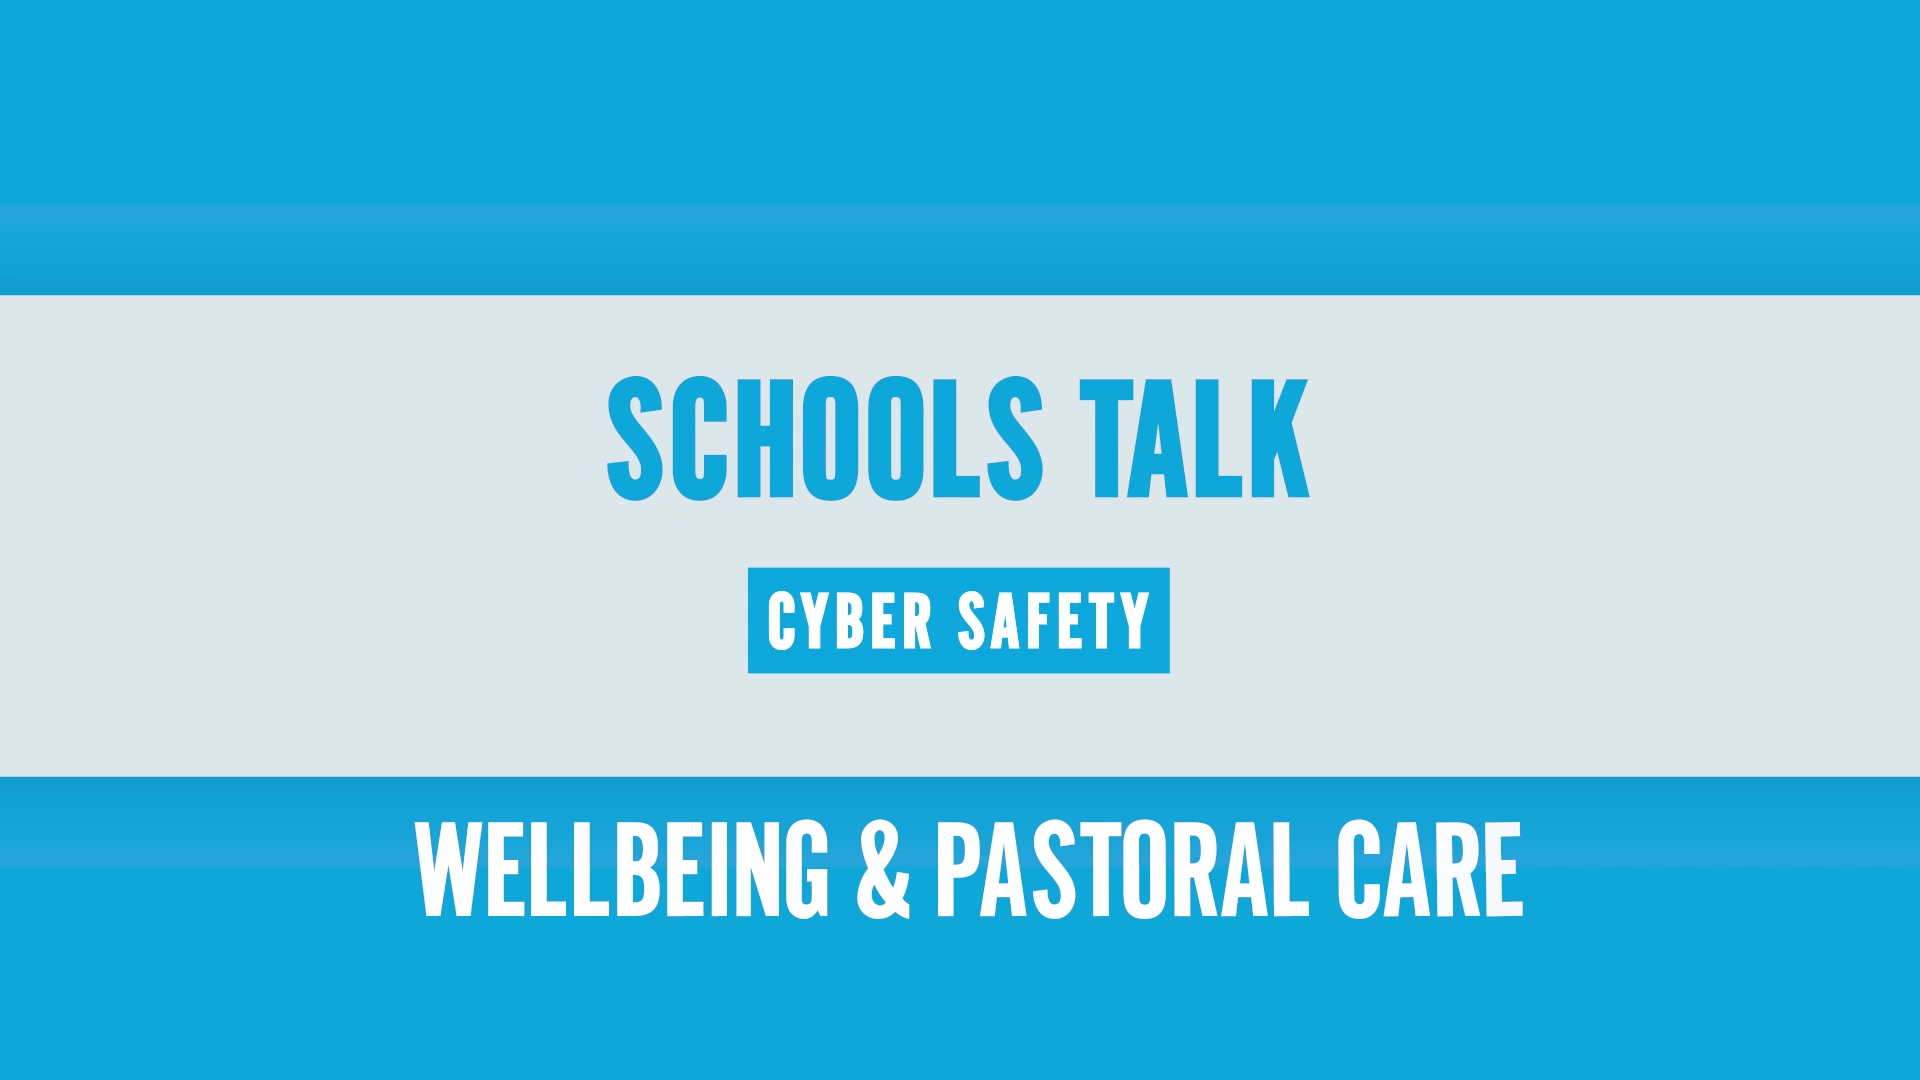 05_Wellbeing&PastoralCare_v2